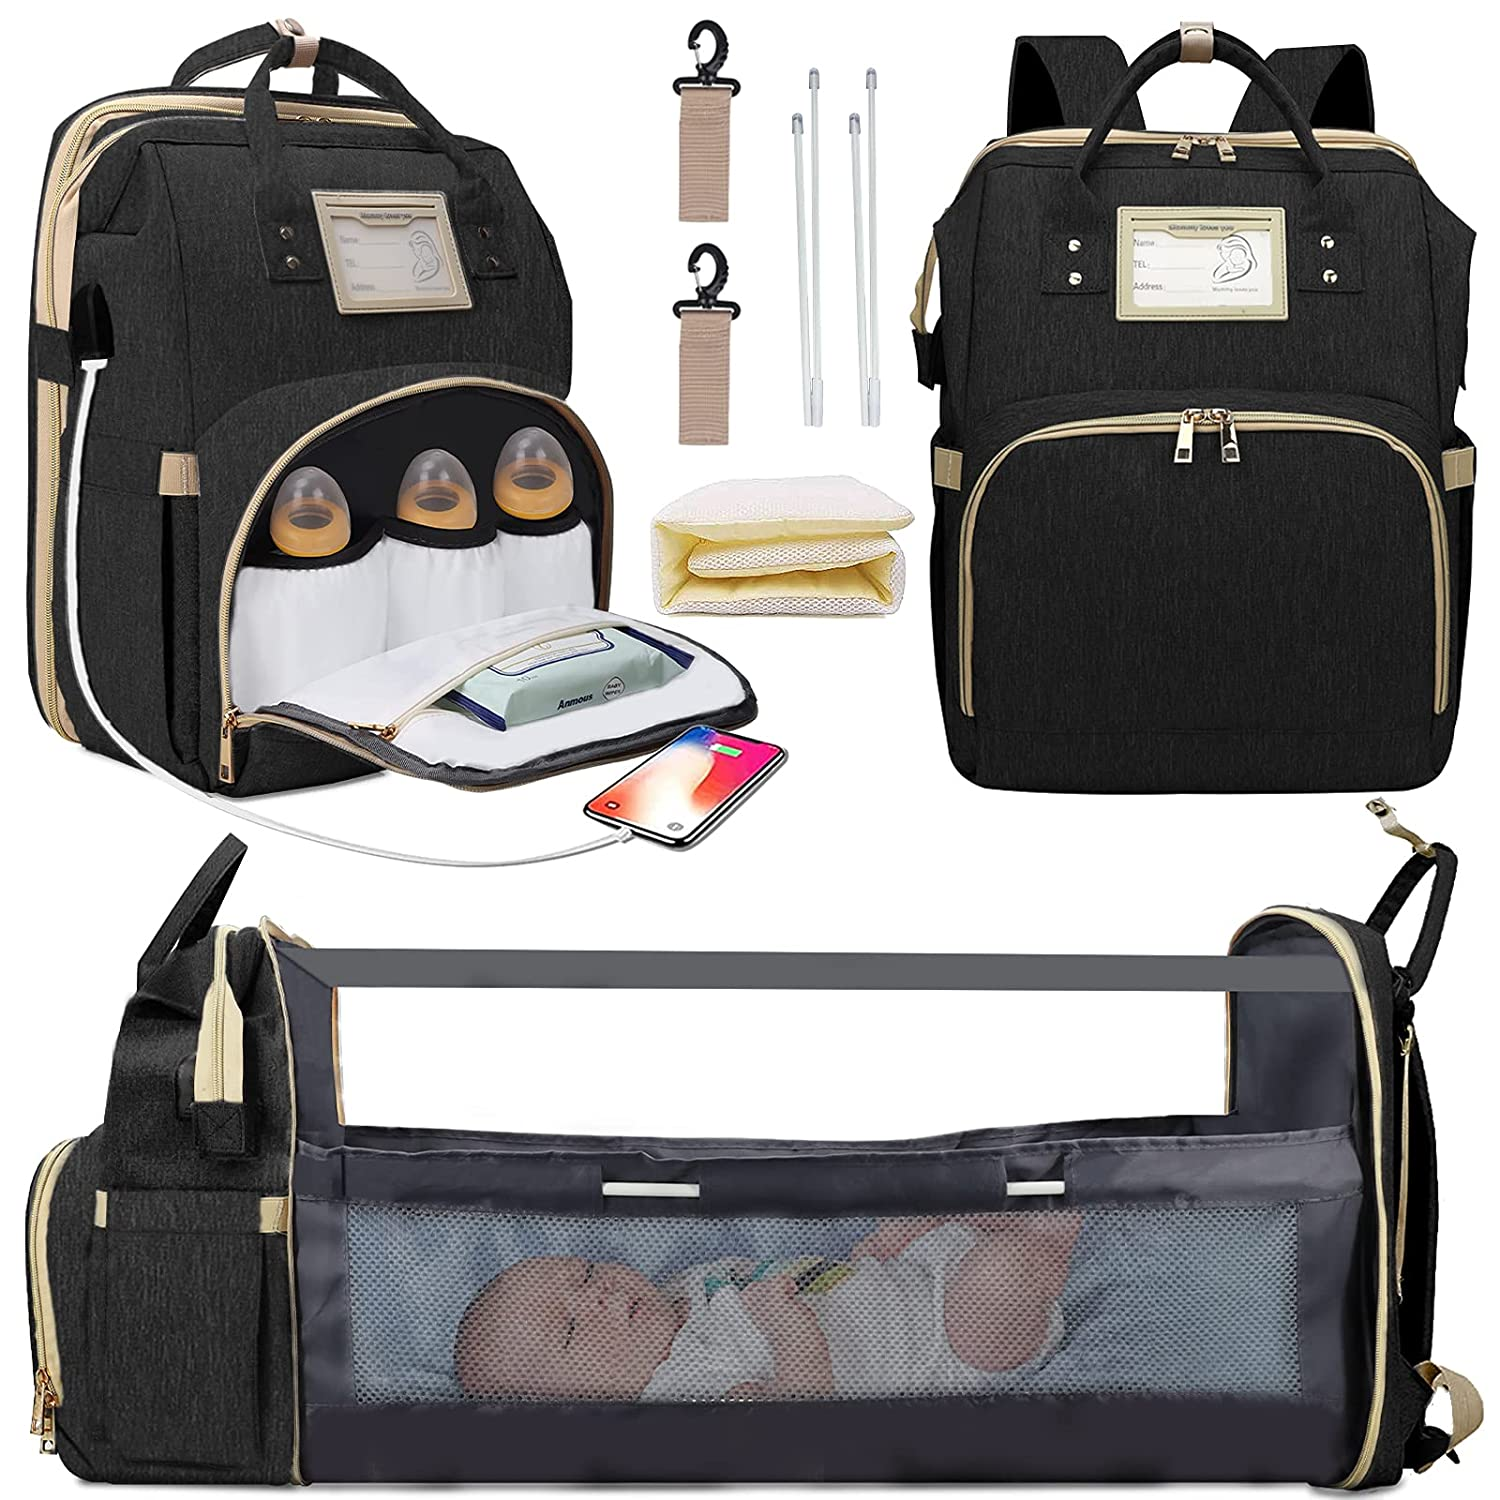 3 in 1 Diaper Bag Backpack Changing Station Bags, YOMOLE Portable Travel Baby Boy Girl Bed Back Pack with USB Charge Foldable, Dad Mom Baby Stuffs Organize Waterproof Bag Large Capacity